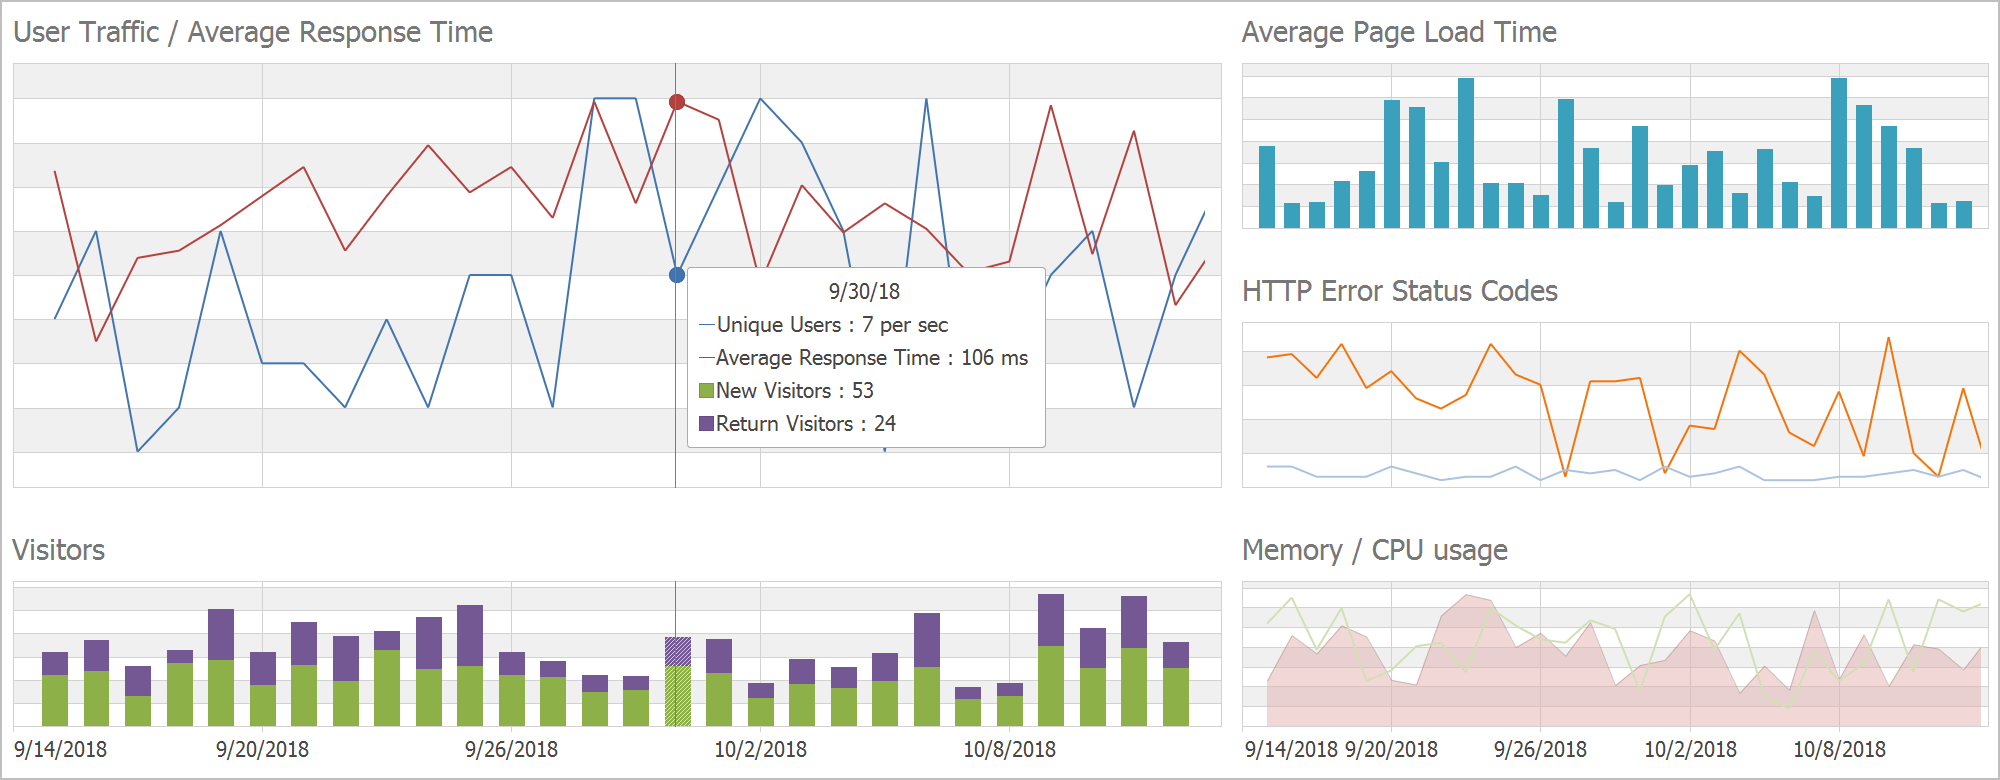 Grid Layout - WinForms Charting, DevExpress